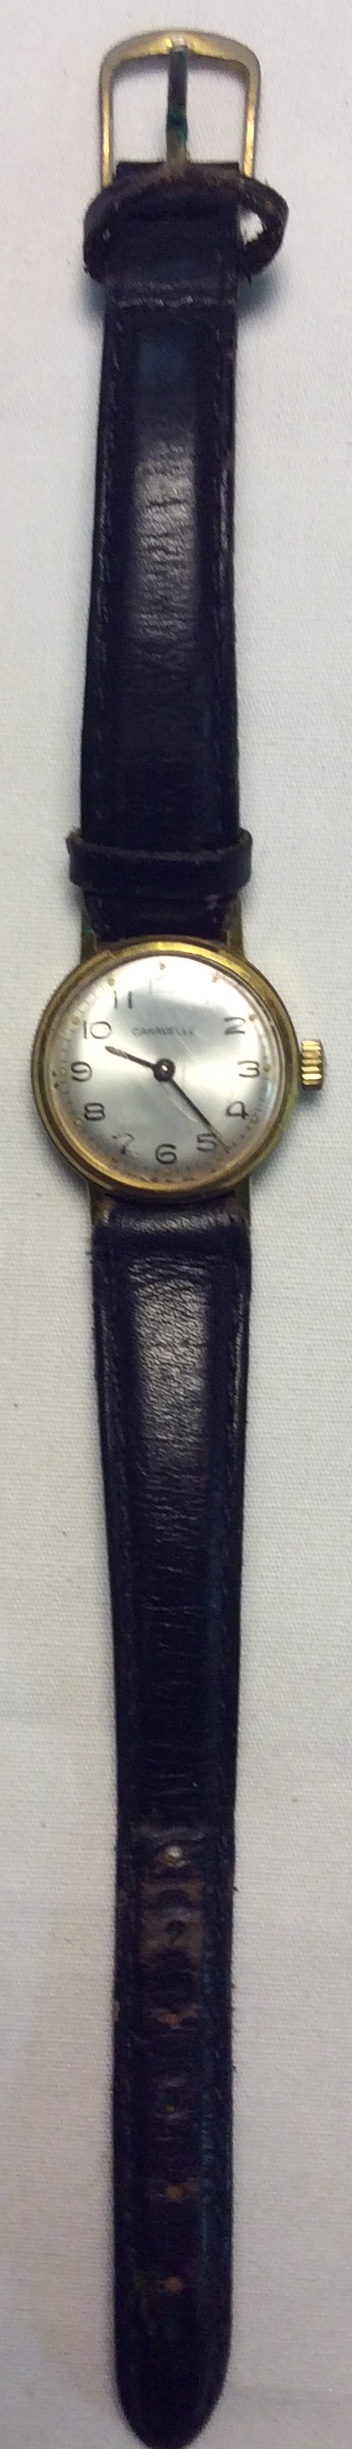 Caravelle watch - round pearl face